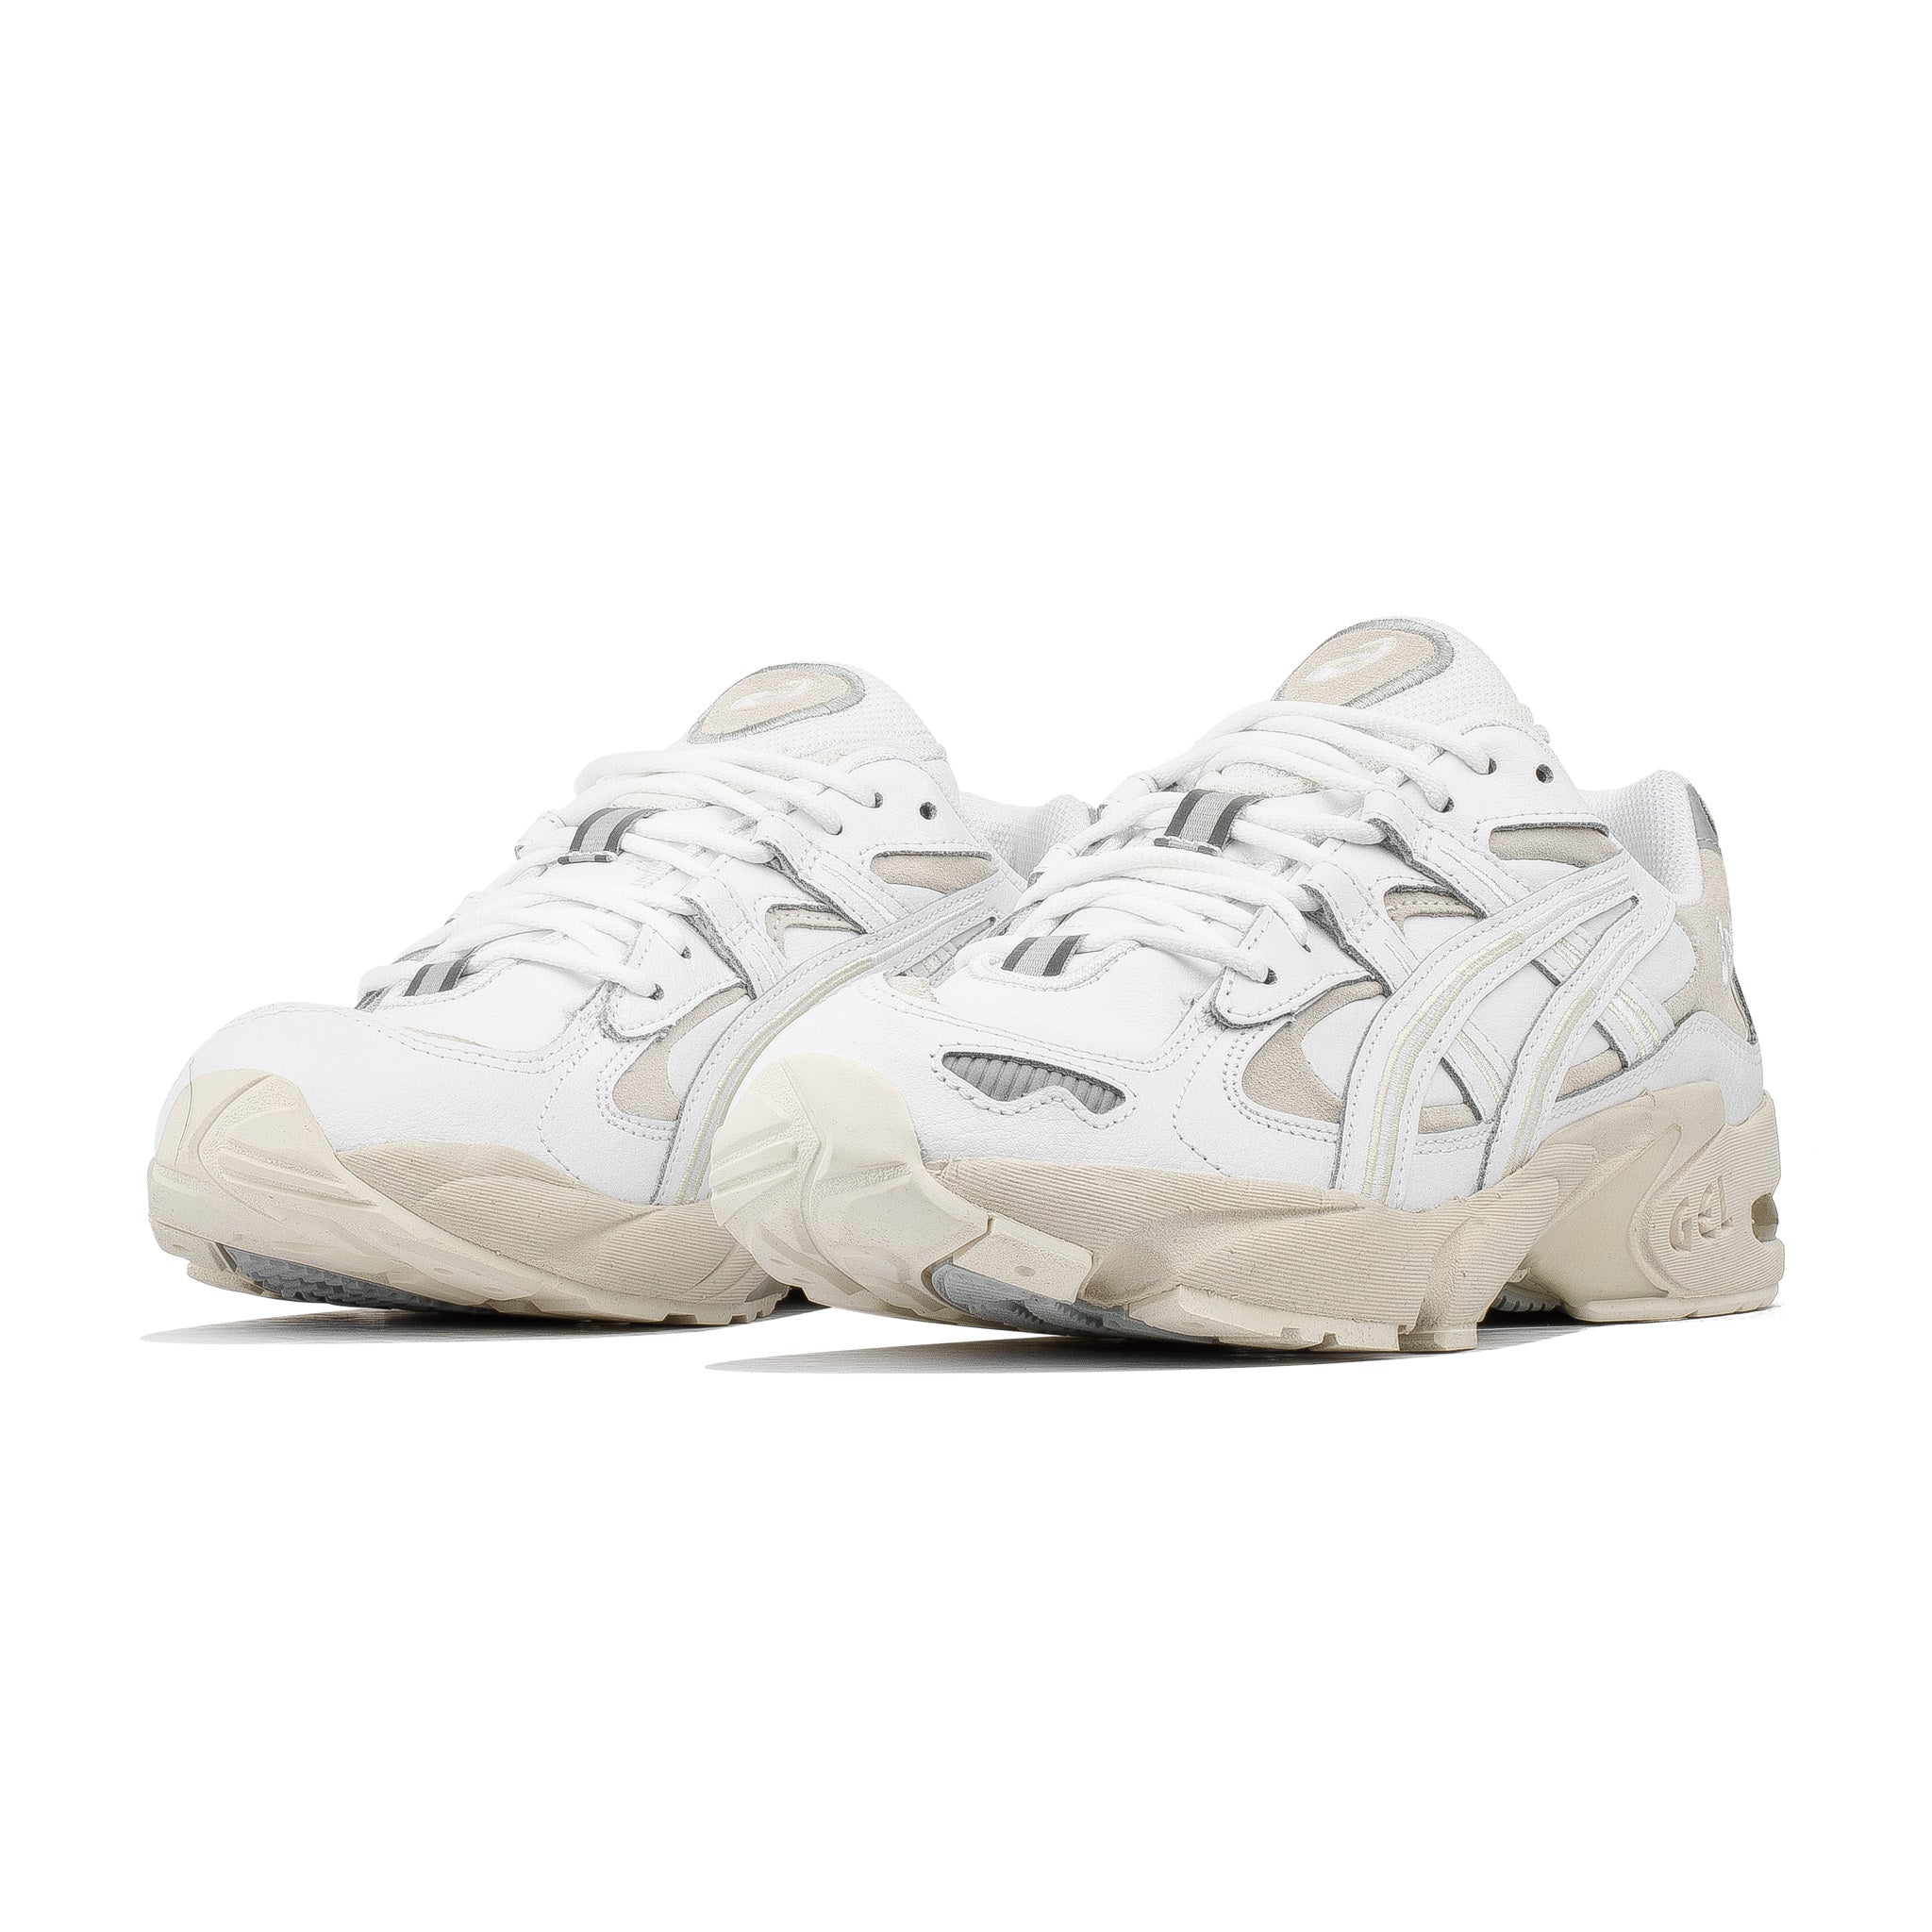 Gel Kayano 5 OG 1191A147-100 White